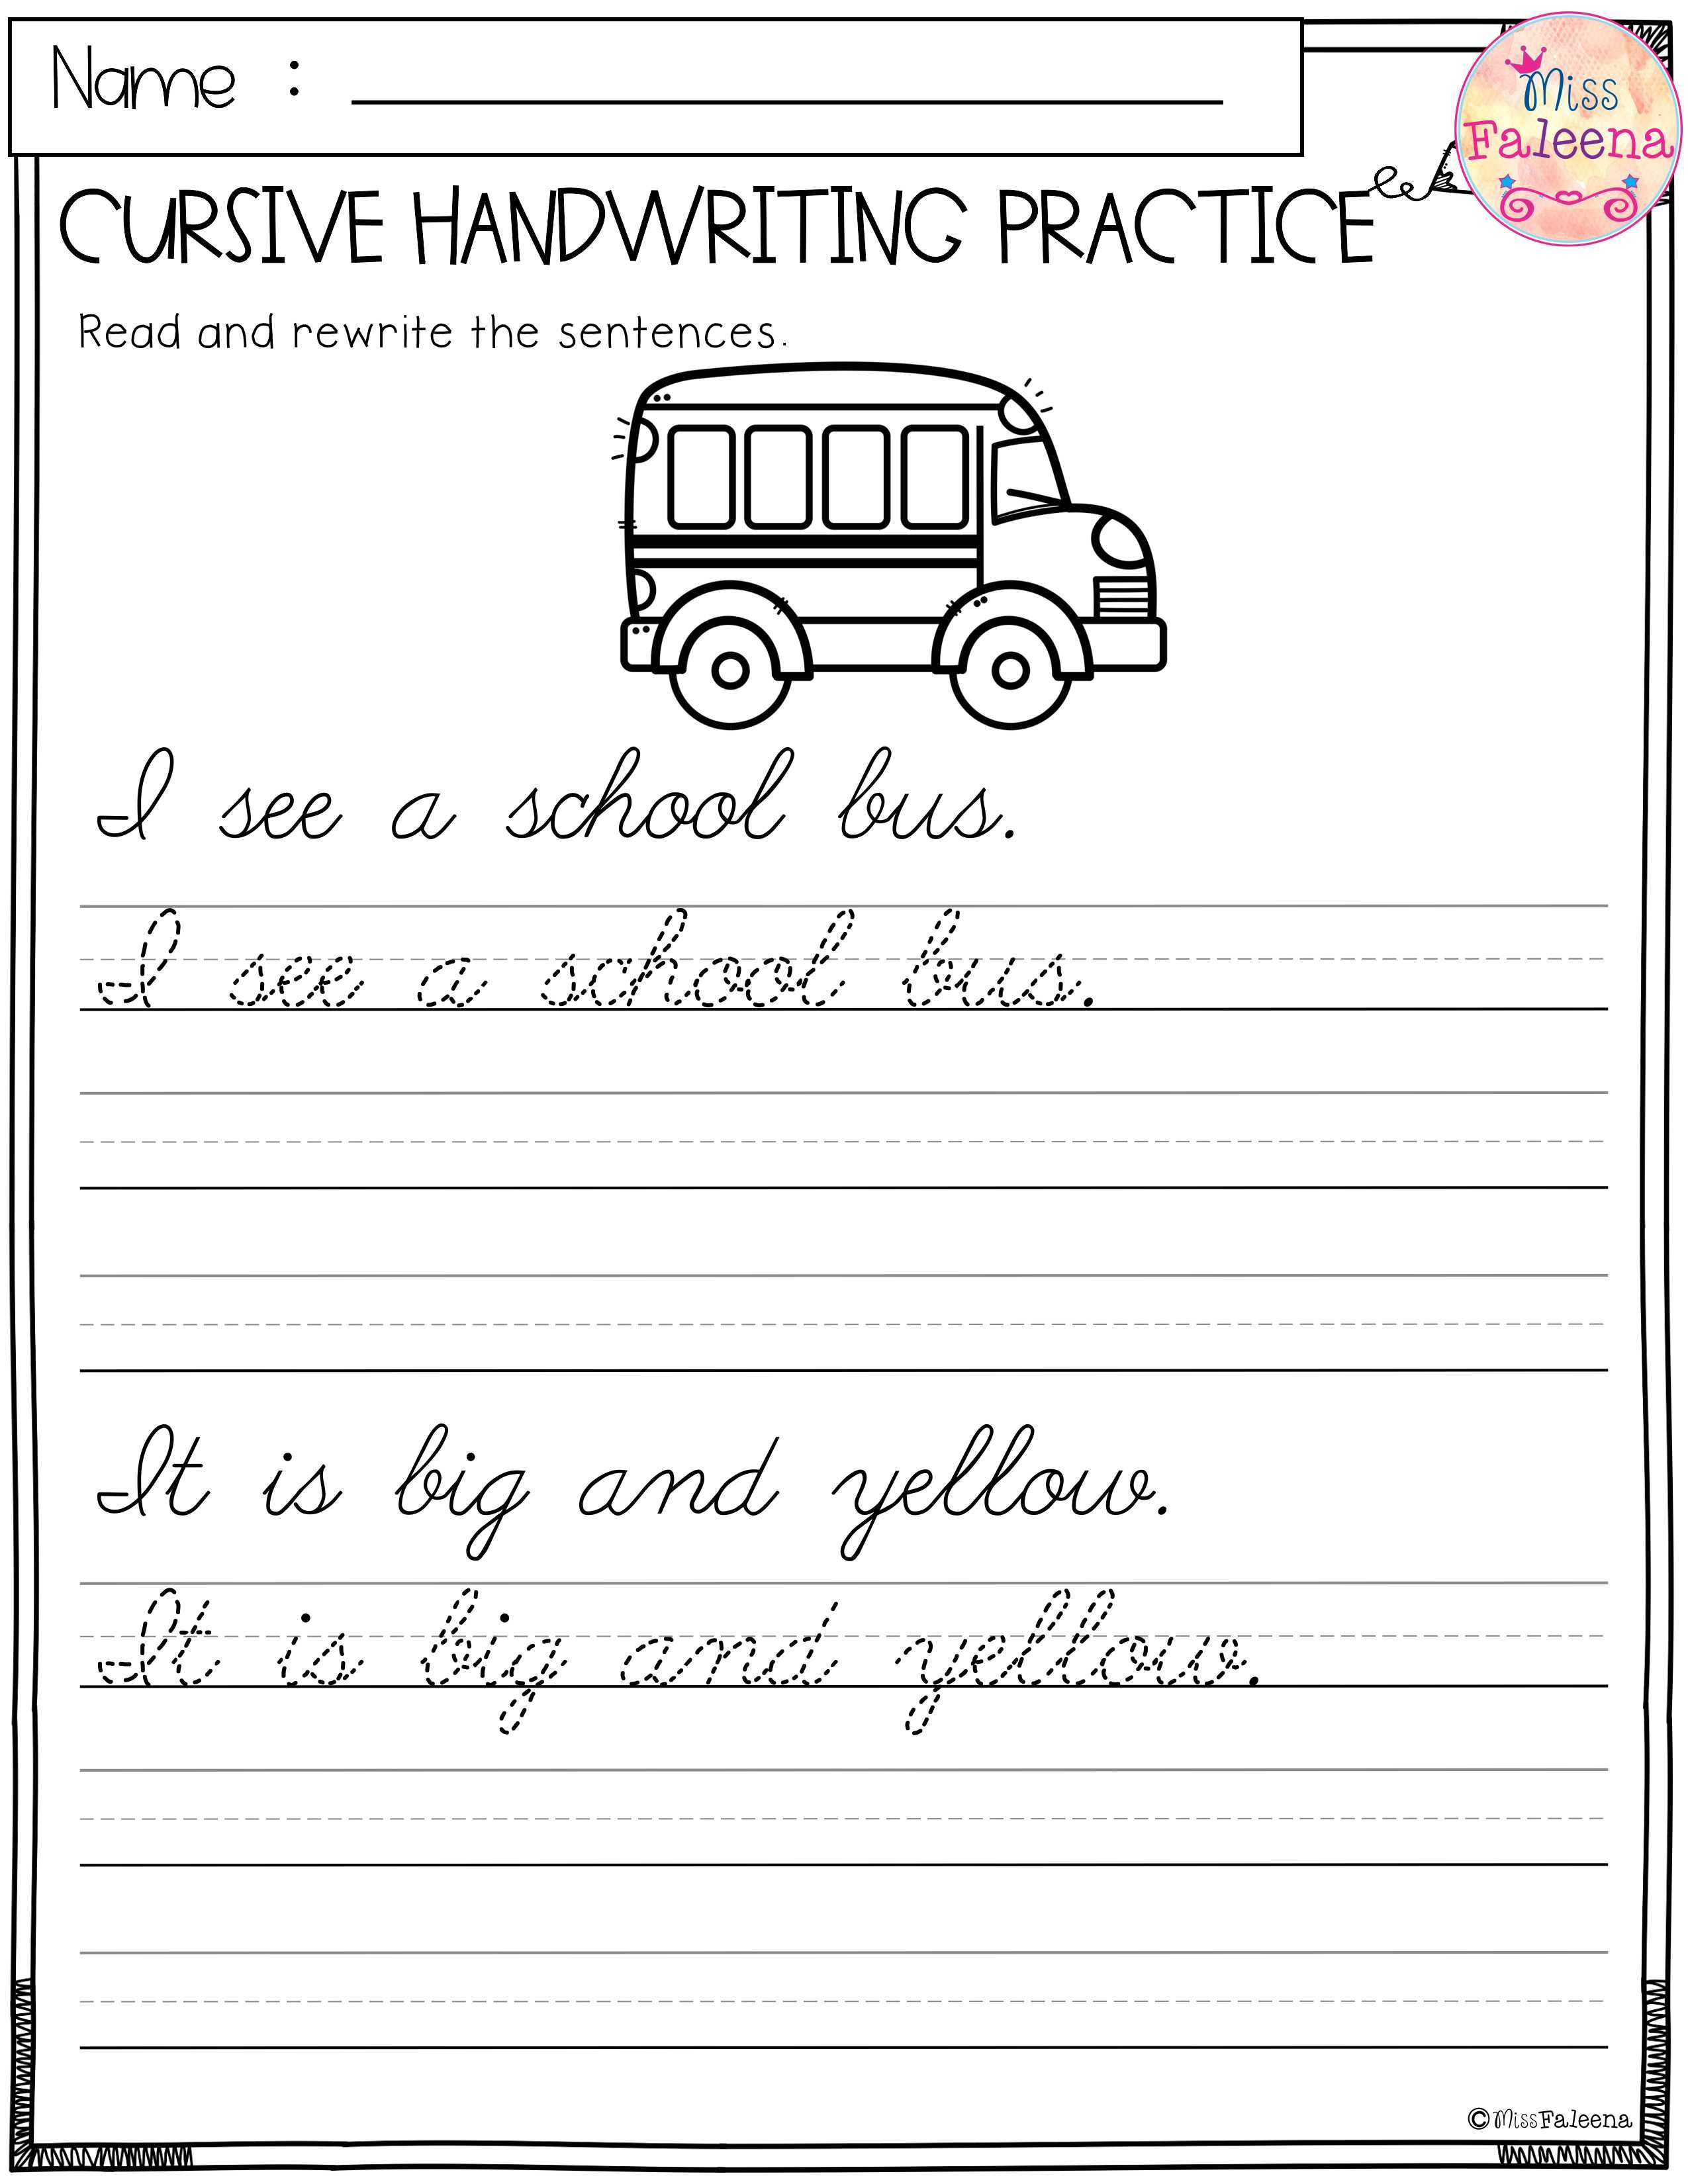 This Product Has 25 Pages Of Handwriting Worksheets This Product Will Teach Children Reading And Writing Simple Sentences Children Will Read Trace And Rewrit [ 3300 x 2550 Pixel ]